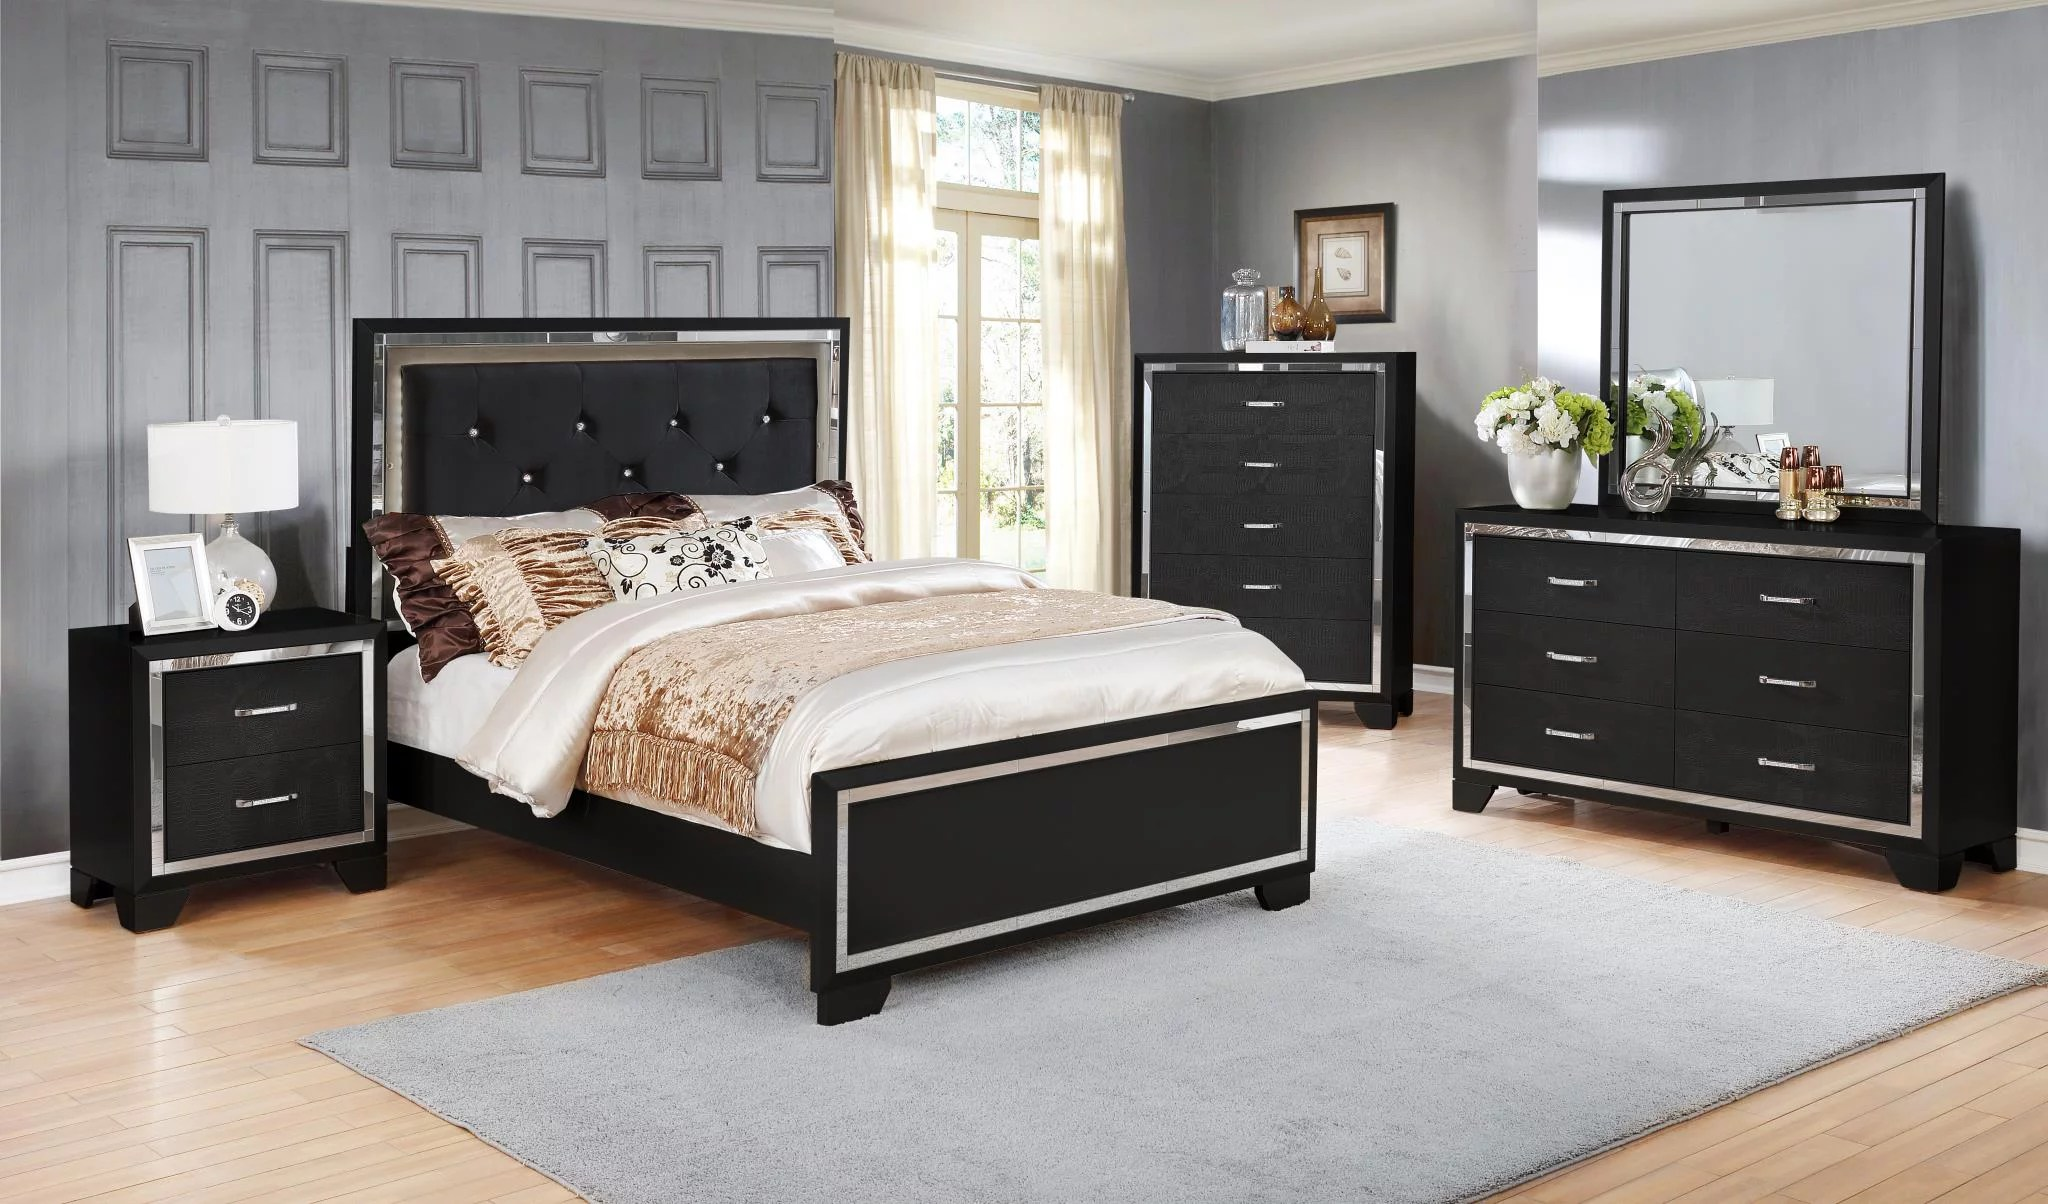 Gtu Furniture Contemporary Black And Silver Style Wooden Queen Bedroom Set Queen Size Bed 5pc Walmart Com Walmart Com